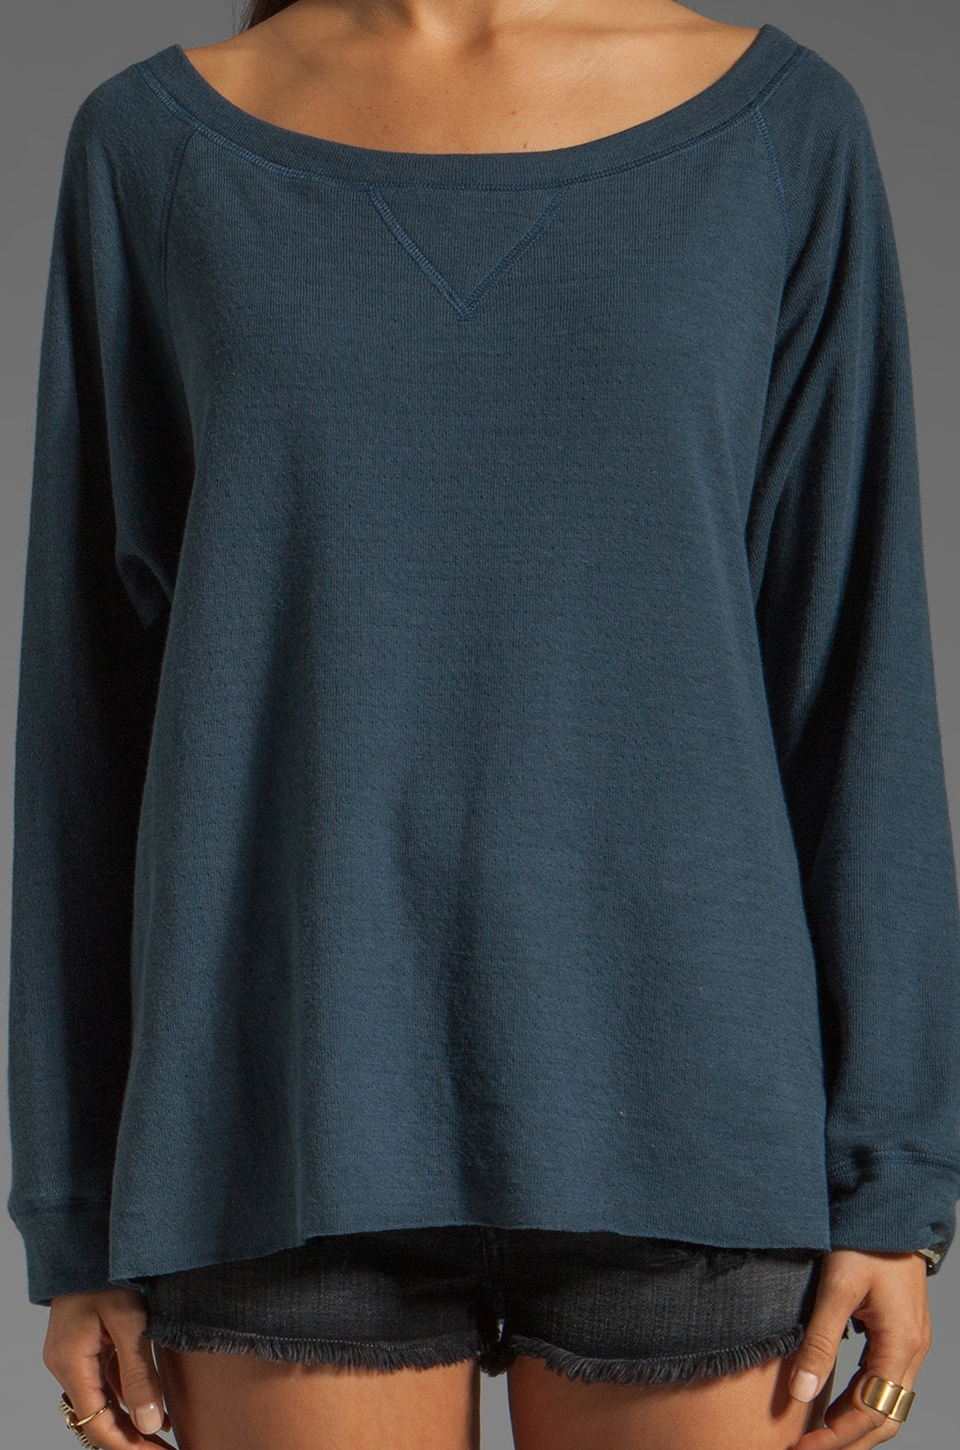 Tylie Double Face Off The Shoulder Raglan Sweater in Danish Blue